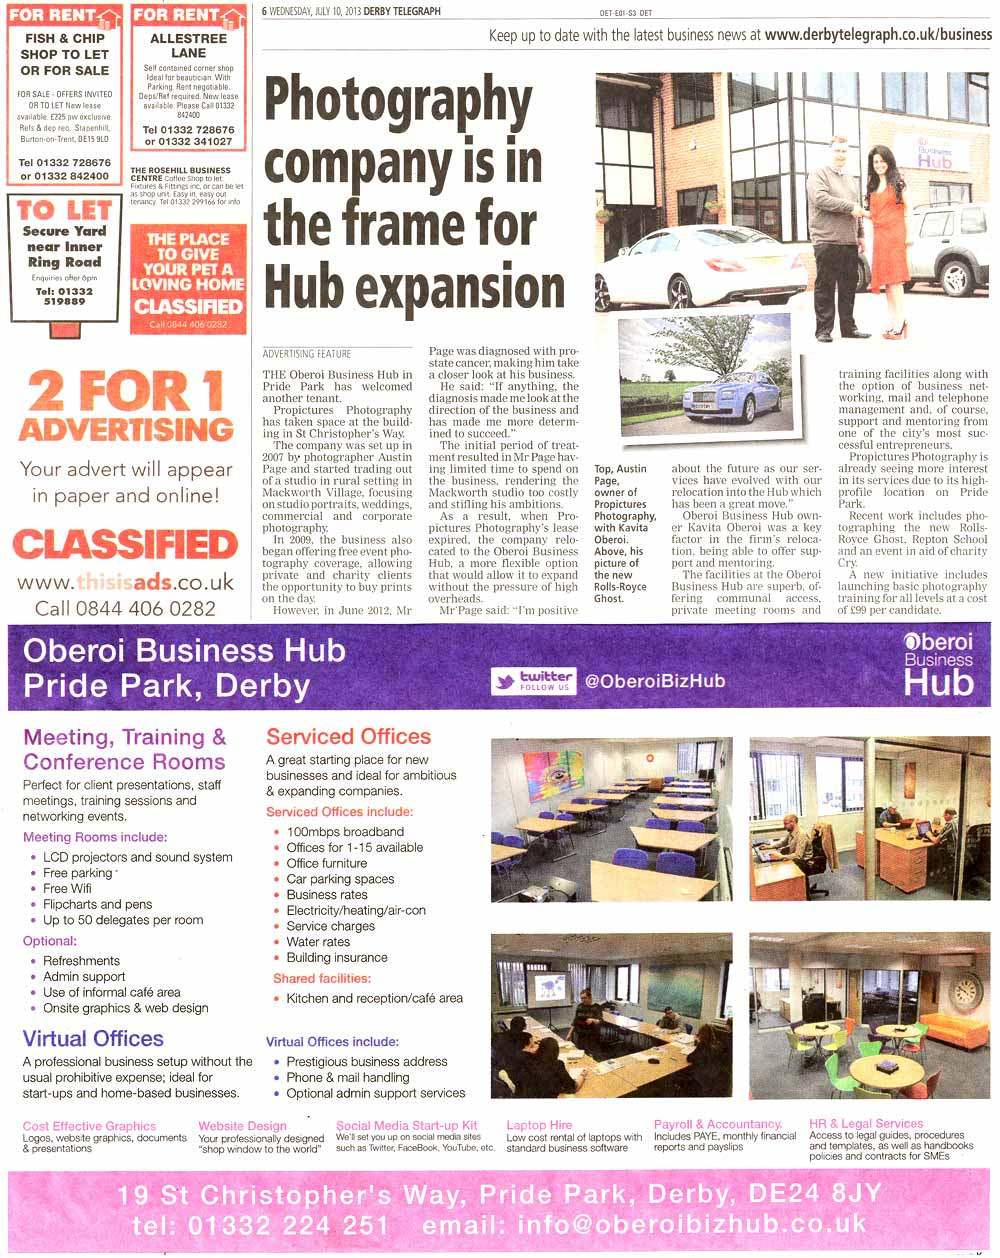 Propictures Photography relocates to the Oberoi Business Hub